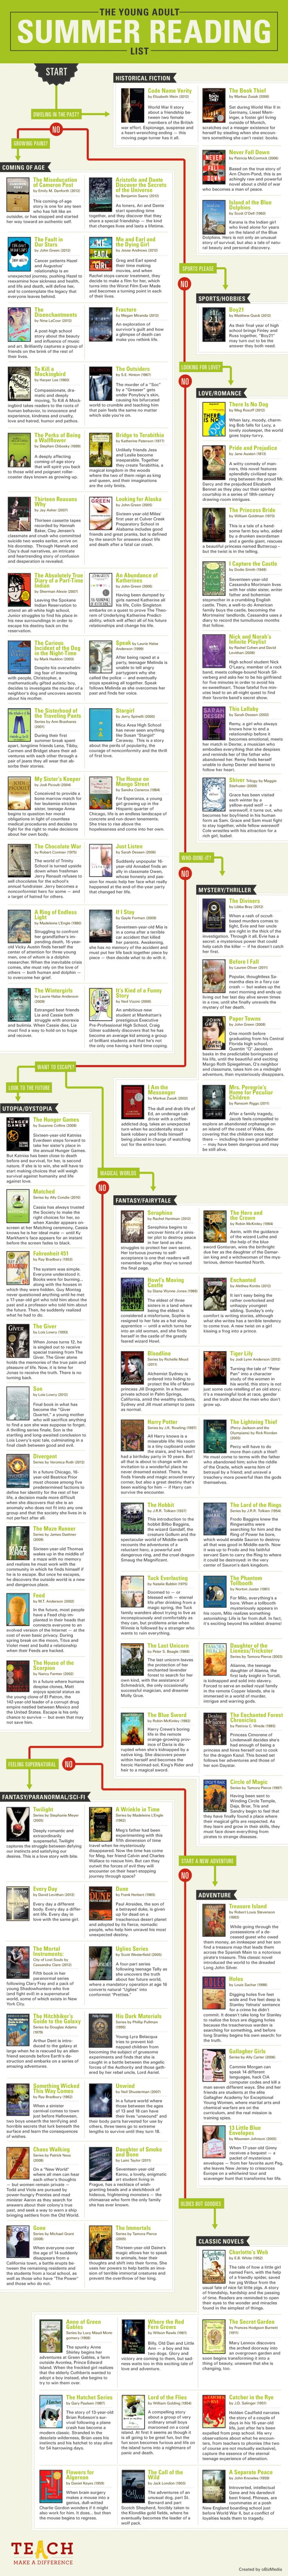 Great flowchart for what Young Adult book to read next! Source: http://benzackheim.com/the-young-adult-summer-reading-list-what-to-read-when-youre-not-reading-harry-potter/